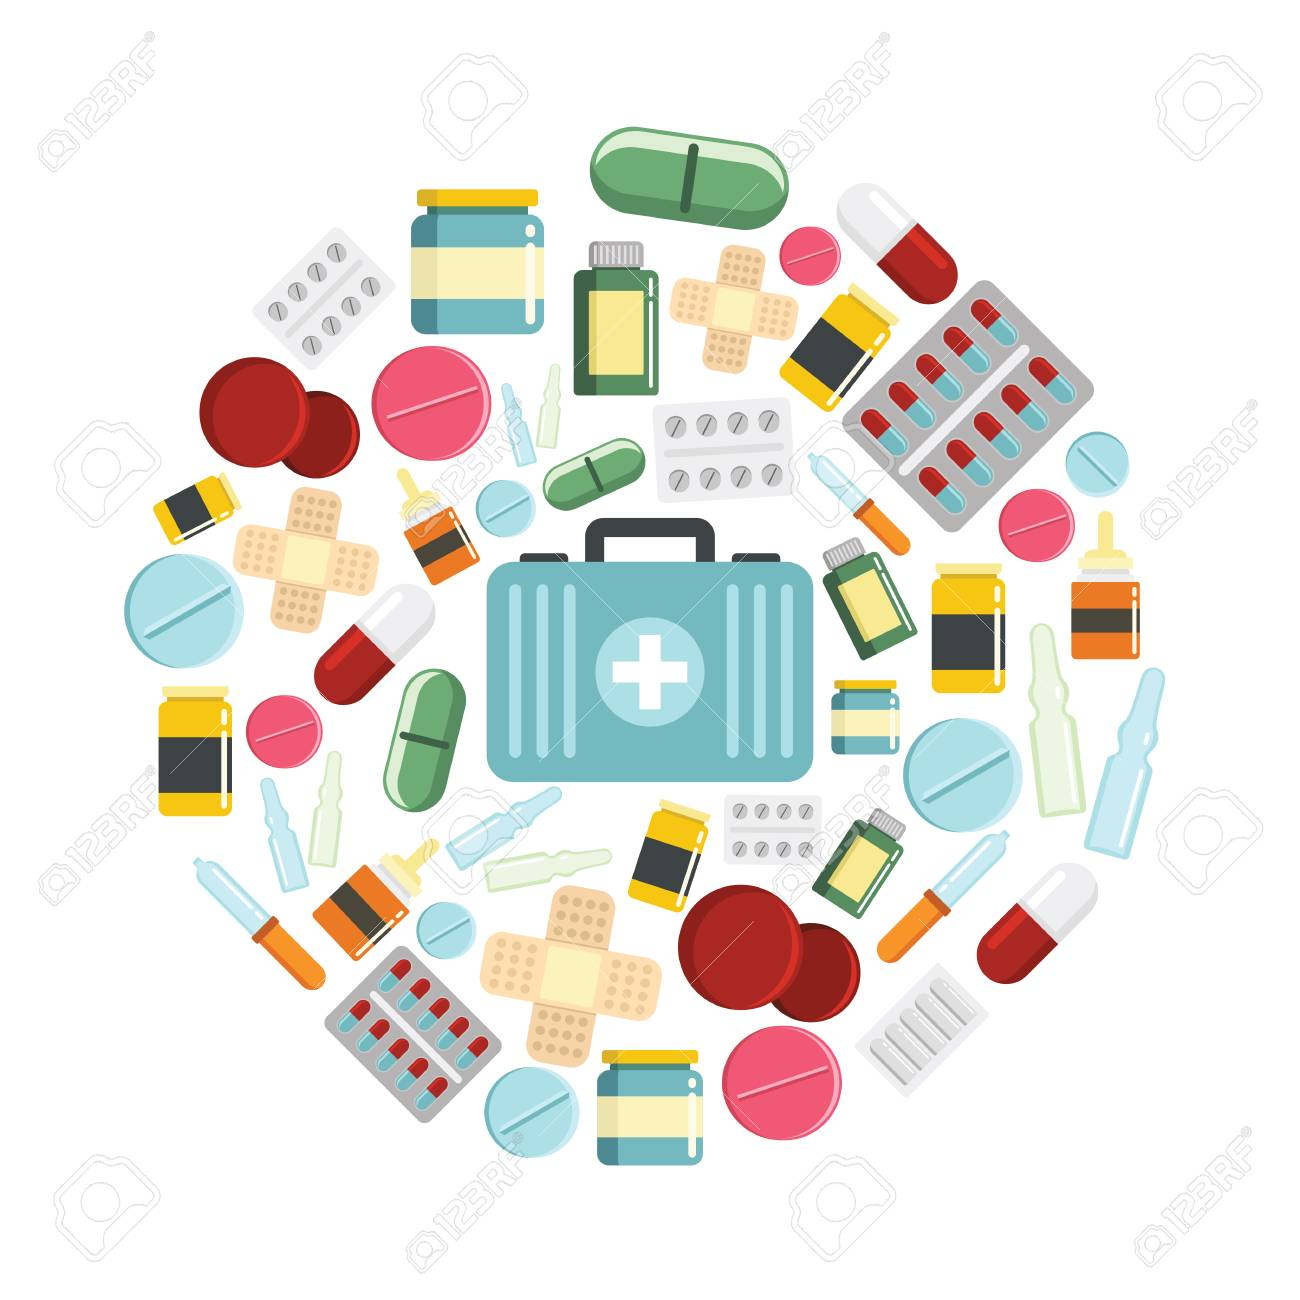 medicine drugs flat icons set medicine drugs vector illustration royalty free cliparts vectors and stock illustration image 83143576 medicine drugs flat icons set medicine drugs vector illustration